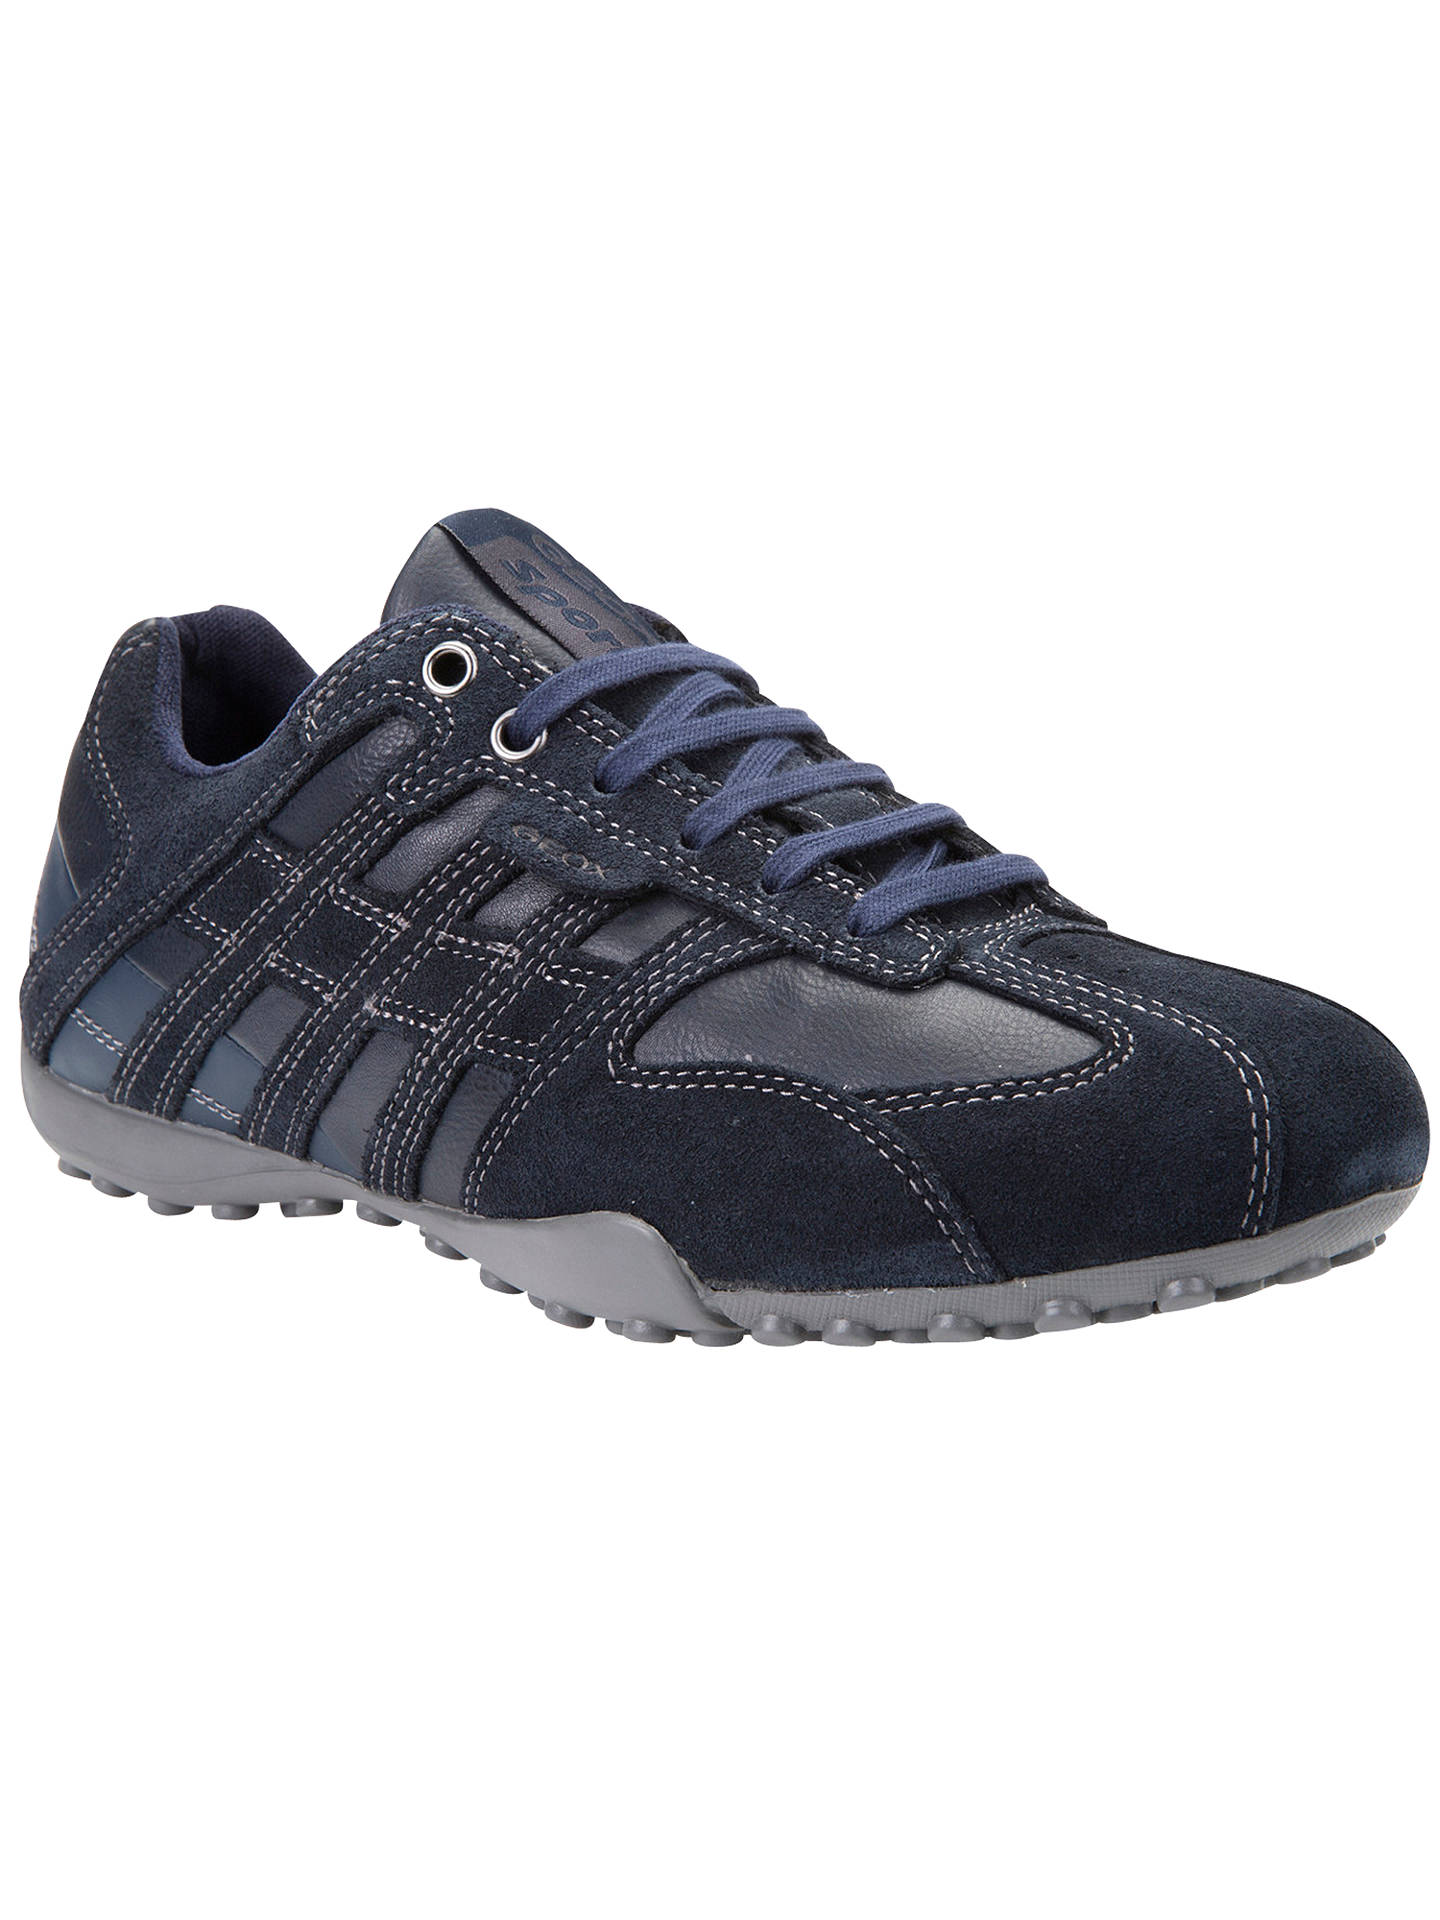 98bb6d7e4fa BuyGeox Leather and Suede Snake Trainers, Navy, 6 Online at johnlewis.com  ...